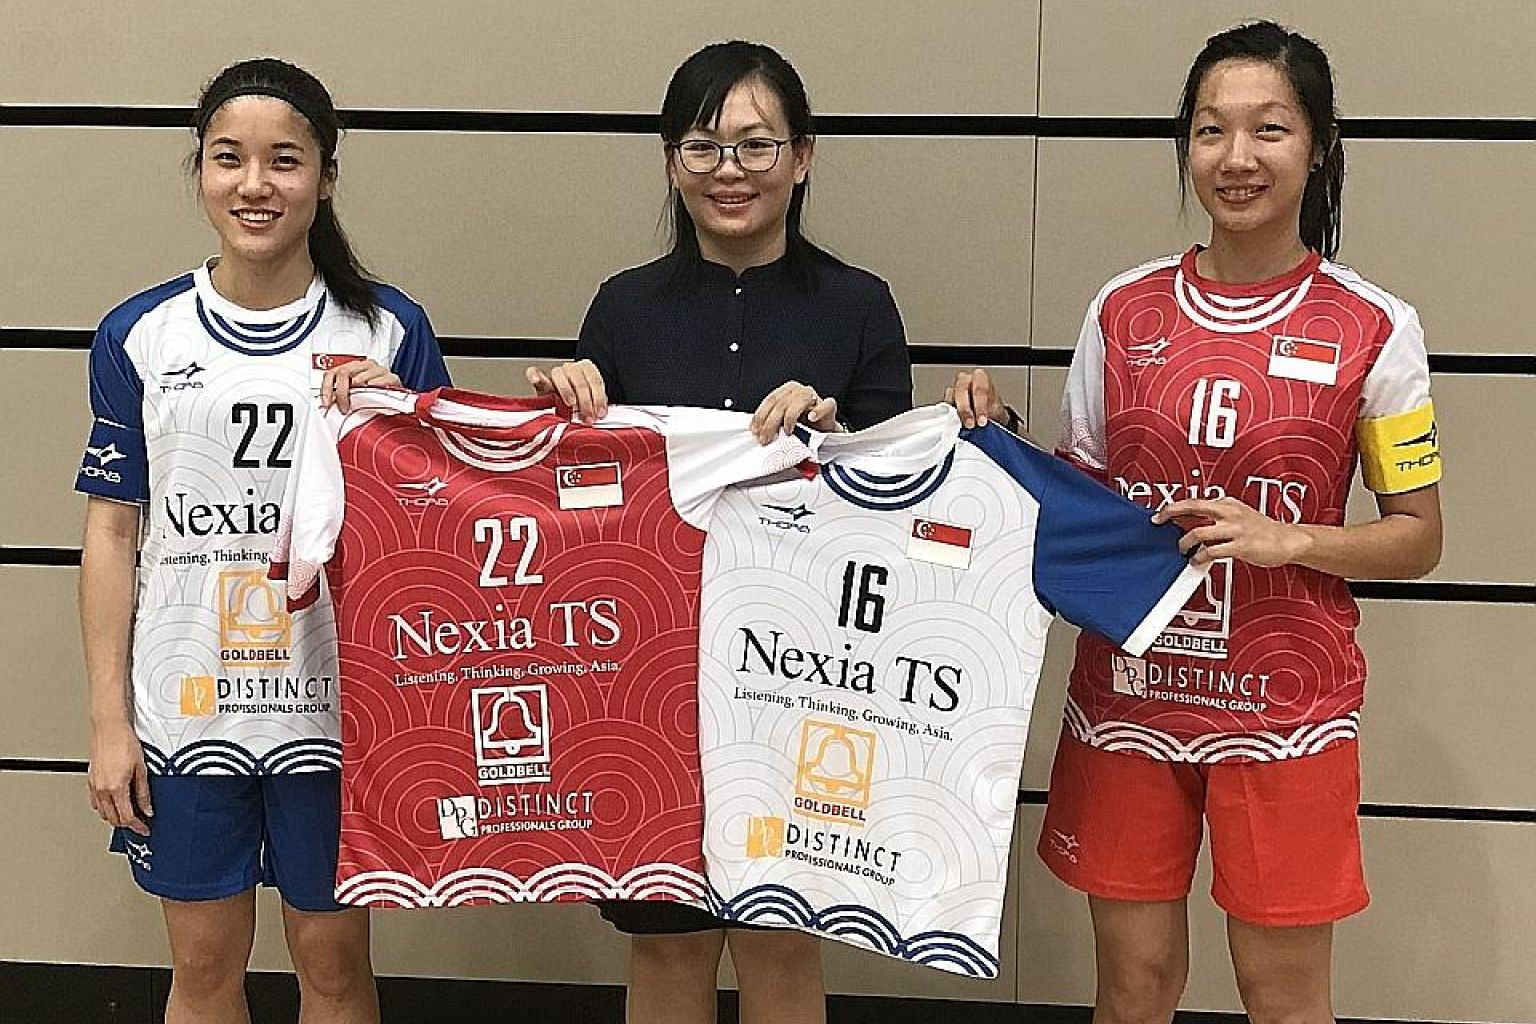 The Singapore women's floorball team are headed to Bangkok, where they will attempt to book a spot for the Dec 7-15 Women's World Floorball Championship in Neuchatel, Switzerland. On Tuesday, captain Amanda Yeap (No. 22) and vice-captain Jowie Tan (N